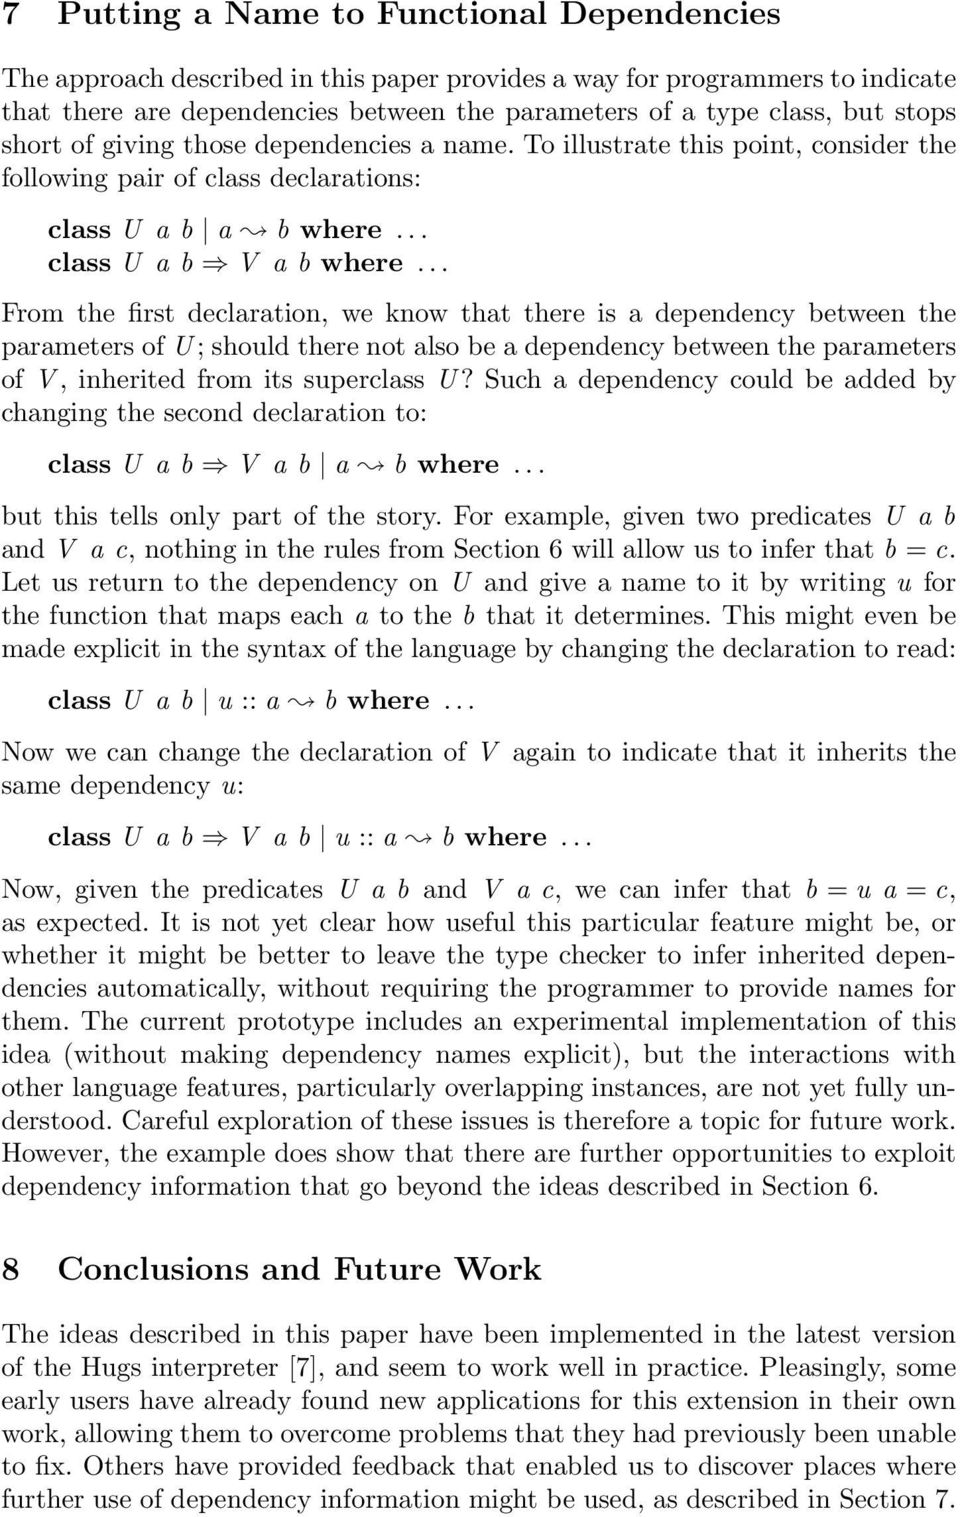 .. From the first declaration, we know that there is a dependency between the parameters of U ; should there not also be a dependency between the parameters of V, inherited from its superclass U?